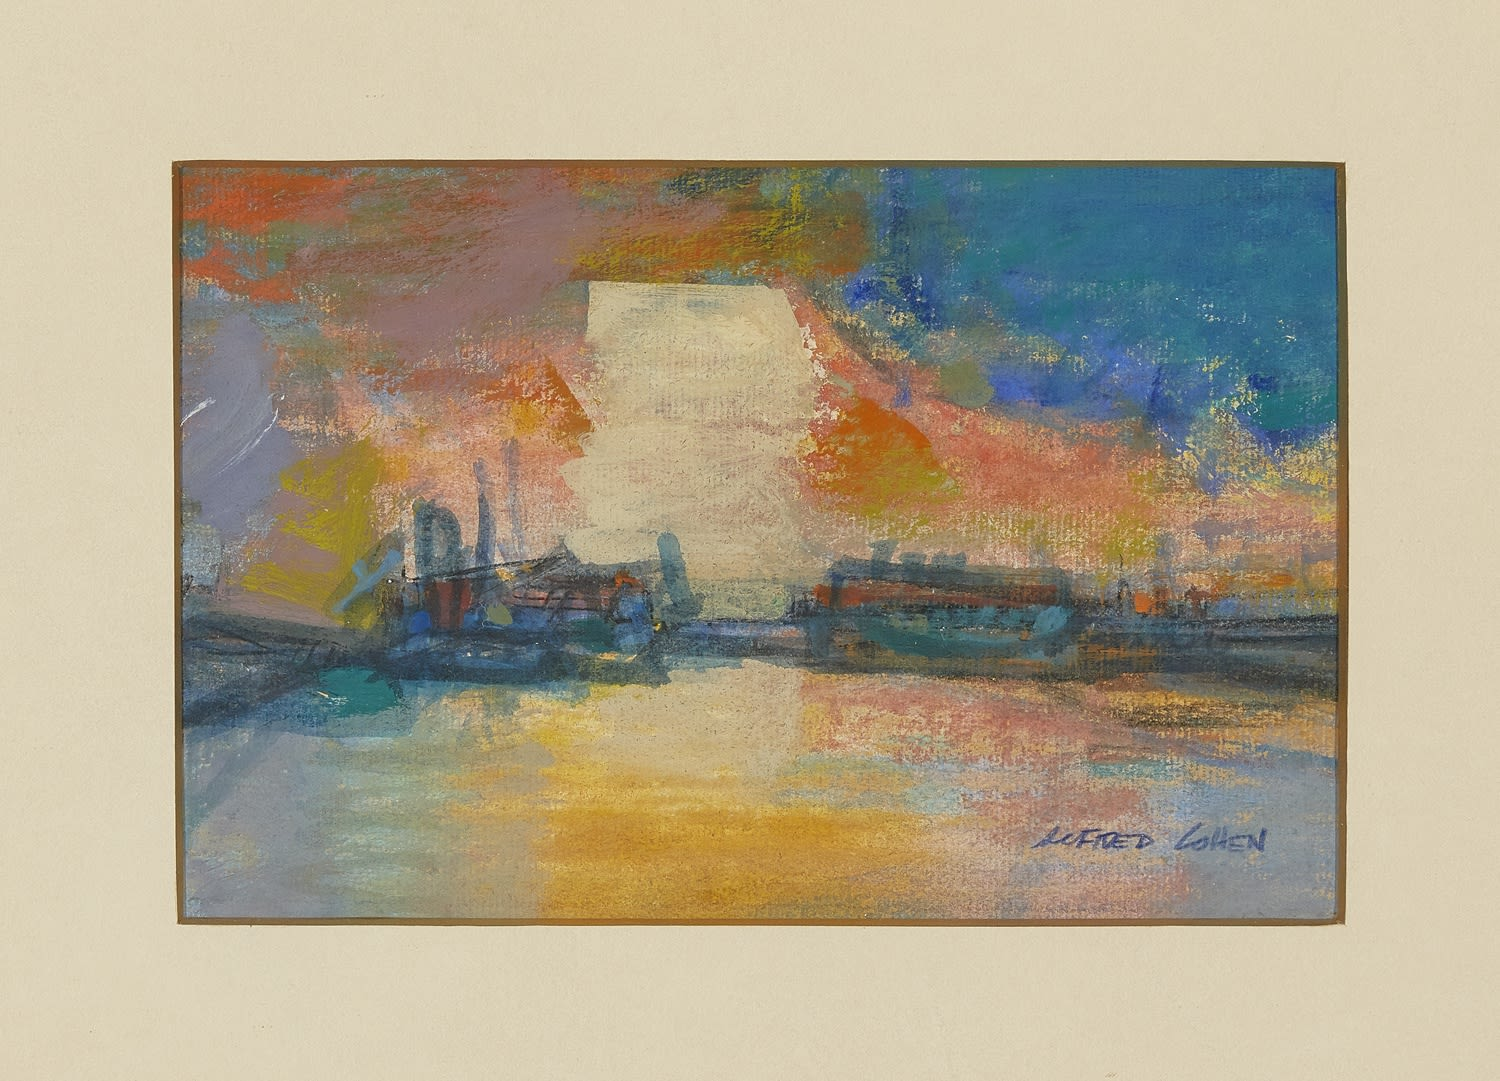 Alfred Cohen (1920-2001) Norfolk Coast - Sunset c. 1991 Casein on paper 14 x 21.6 cm Collection: Max Saunders © Estate of Alfred Cohen 2020